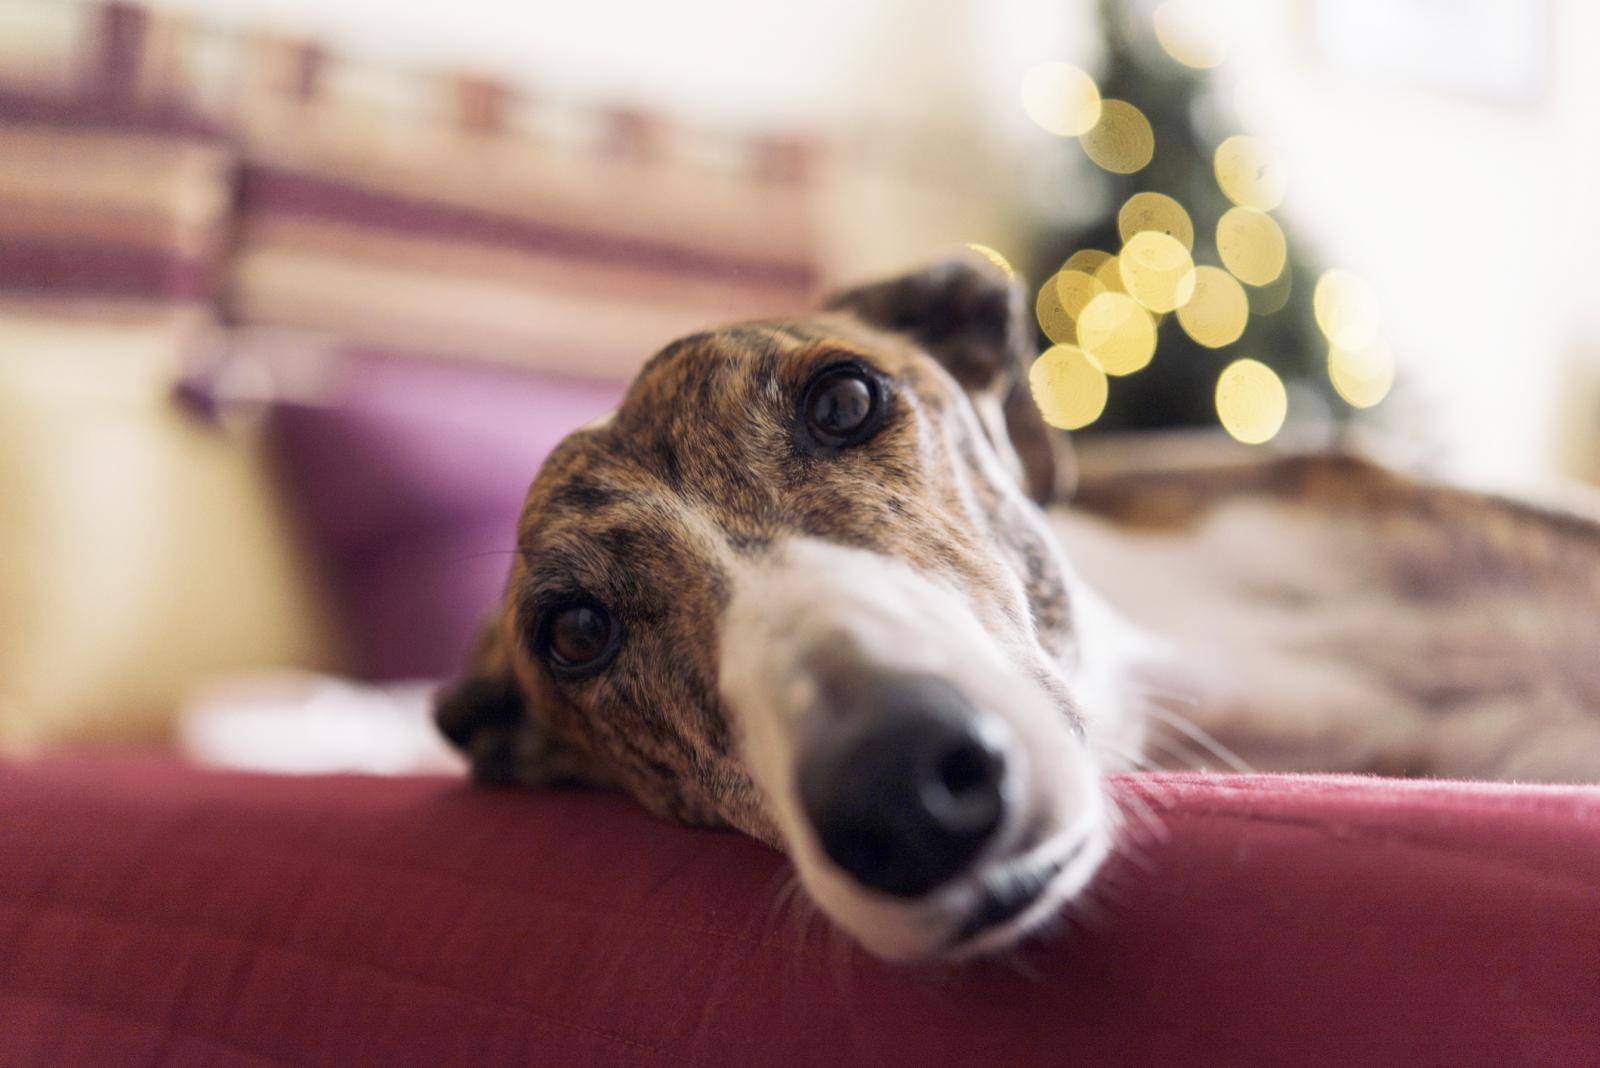 Greyhound lying on couch at Christmas time